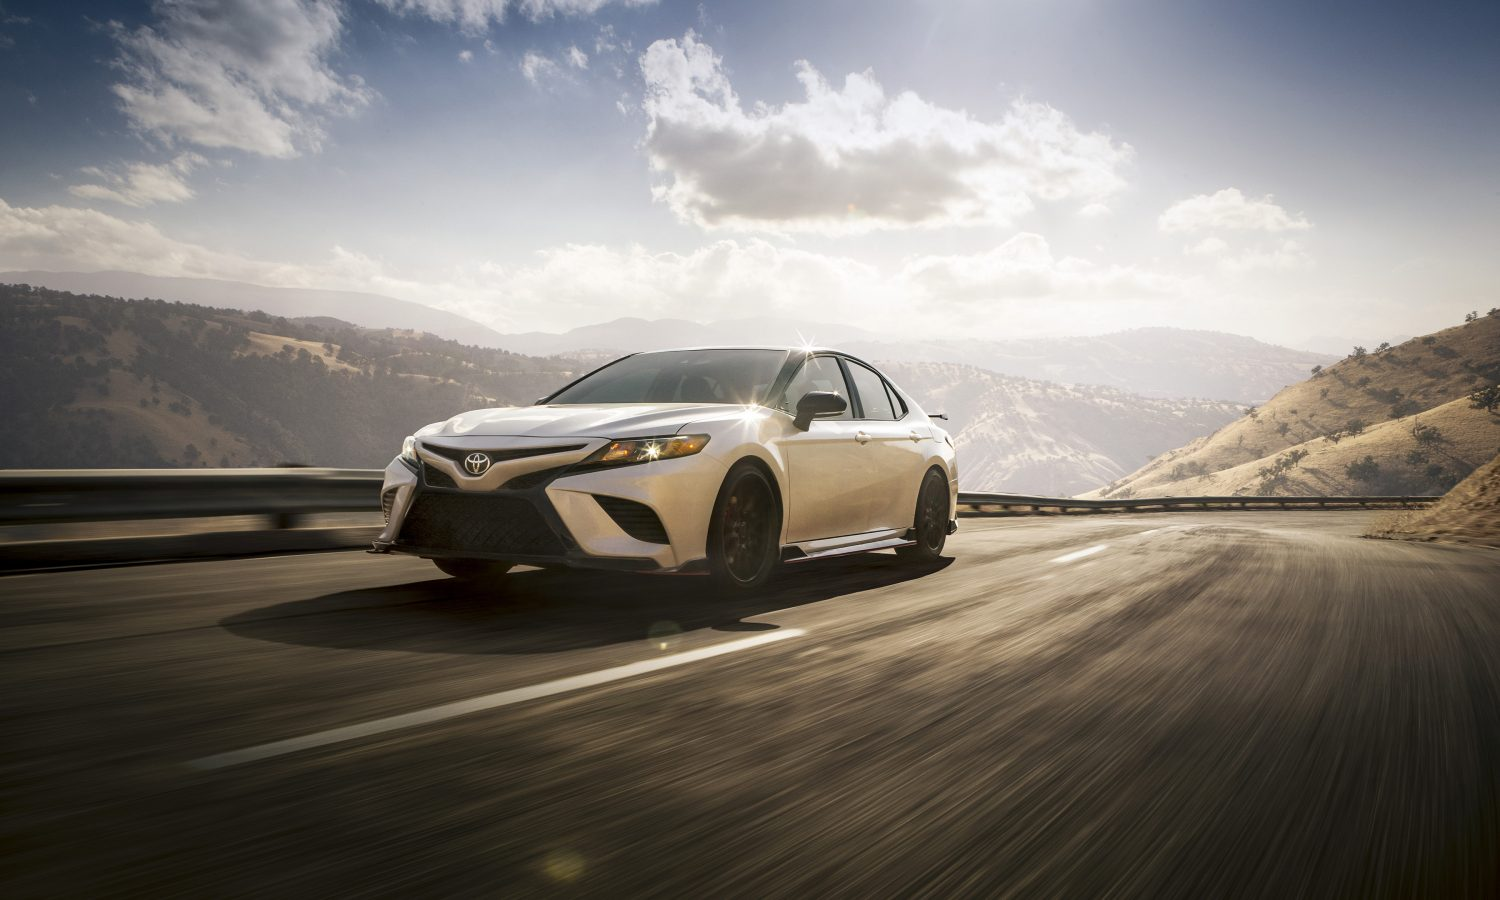 Toyota Camry Leads Midsize Sedan Segment While Revving It Up with First-Ever TRD Model